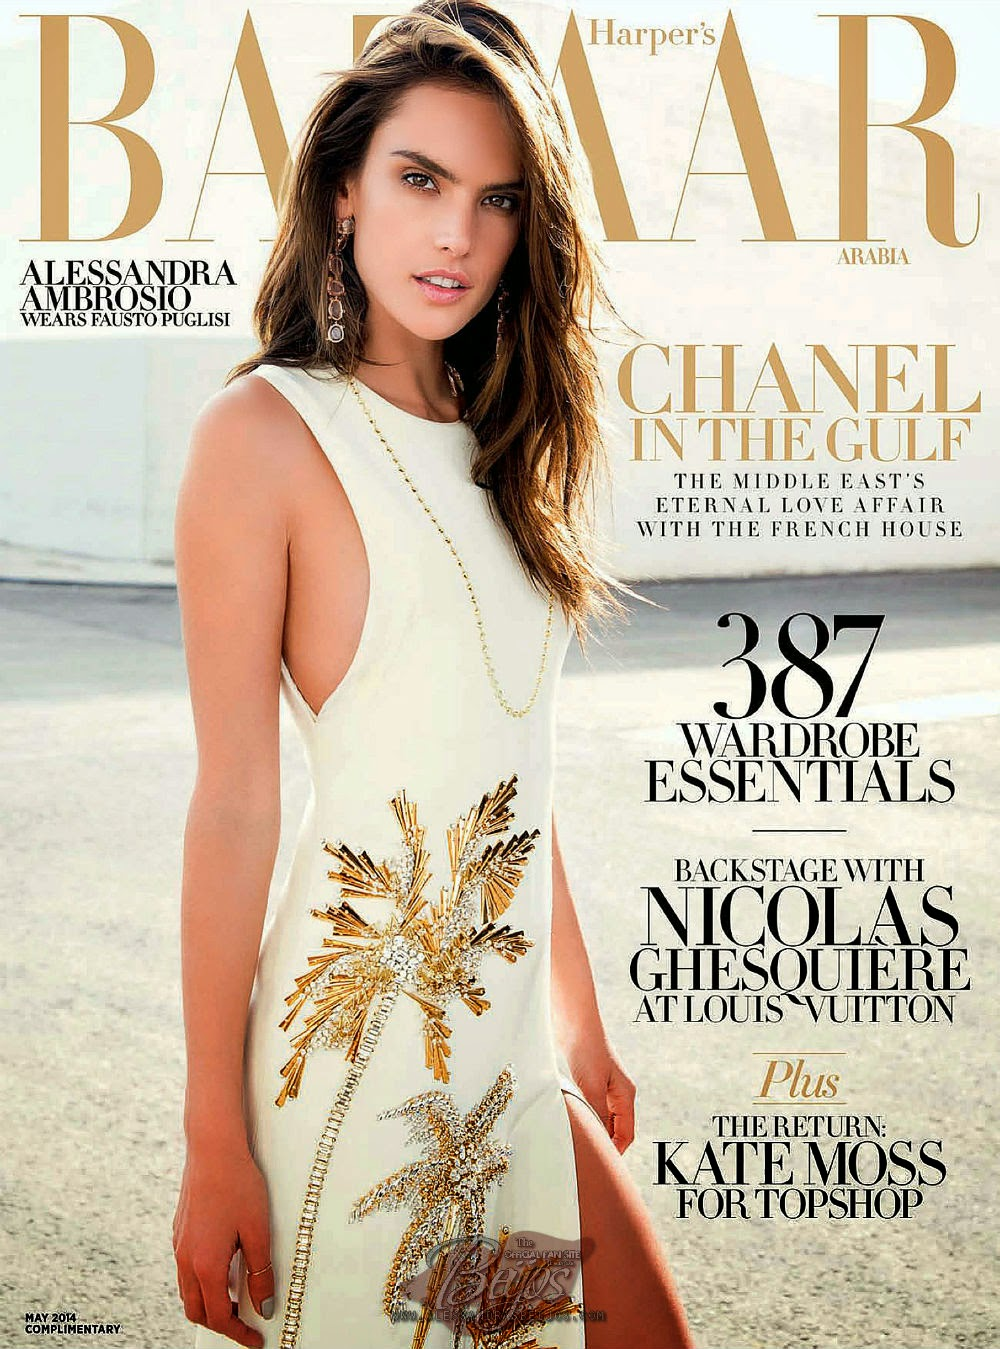 Alessandra Ambrosio by Bleacher & Everard for Harper's Bazaar Magazine,Arabia, May 2014